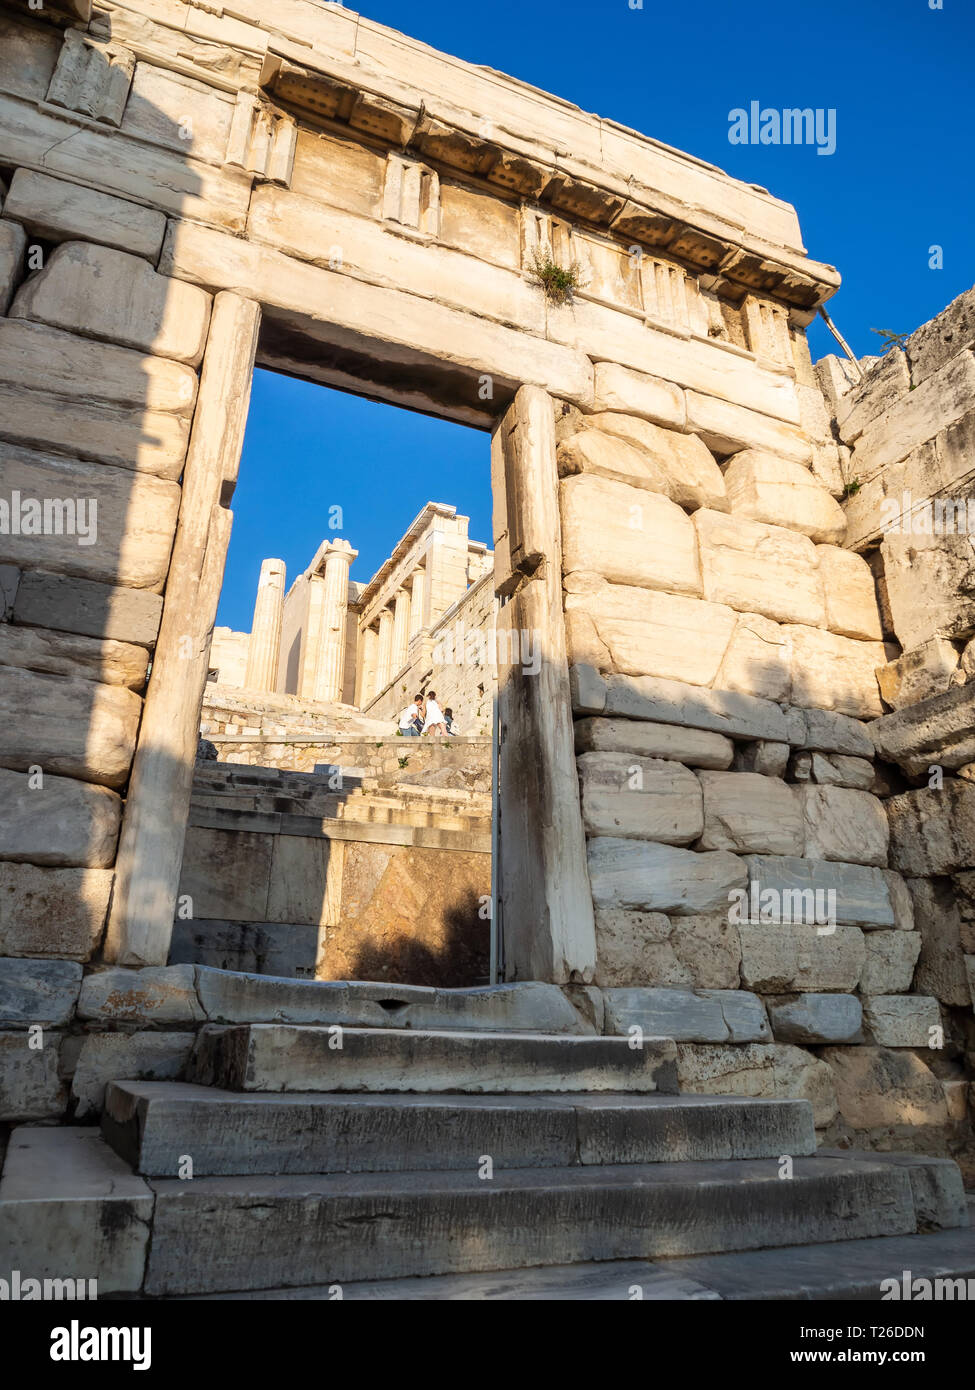 Propylaea entrance to Acropolis in Athens, Greece against sunset Stock Photo